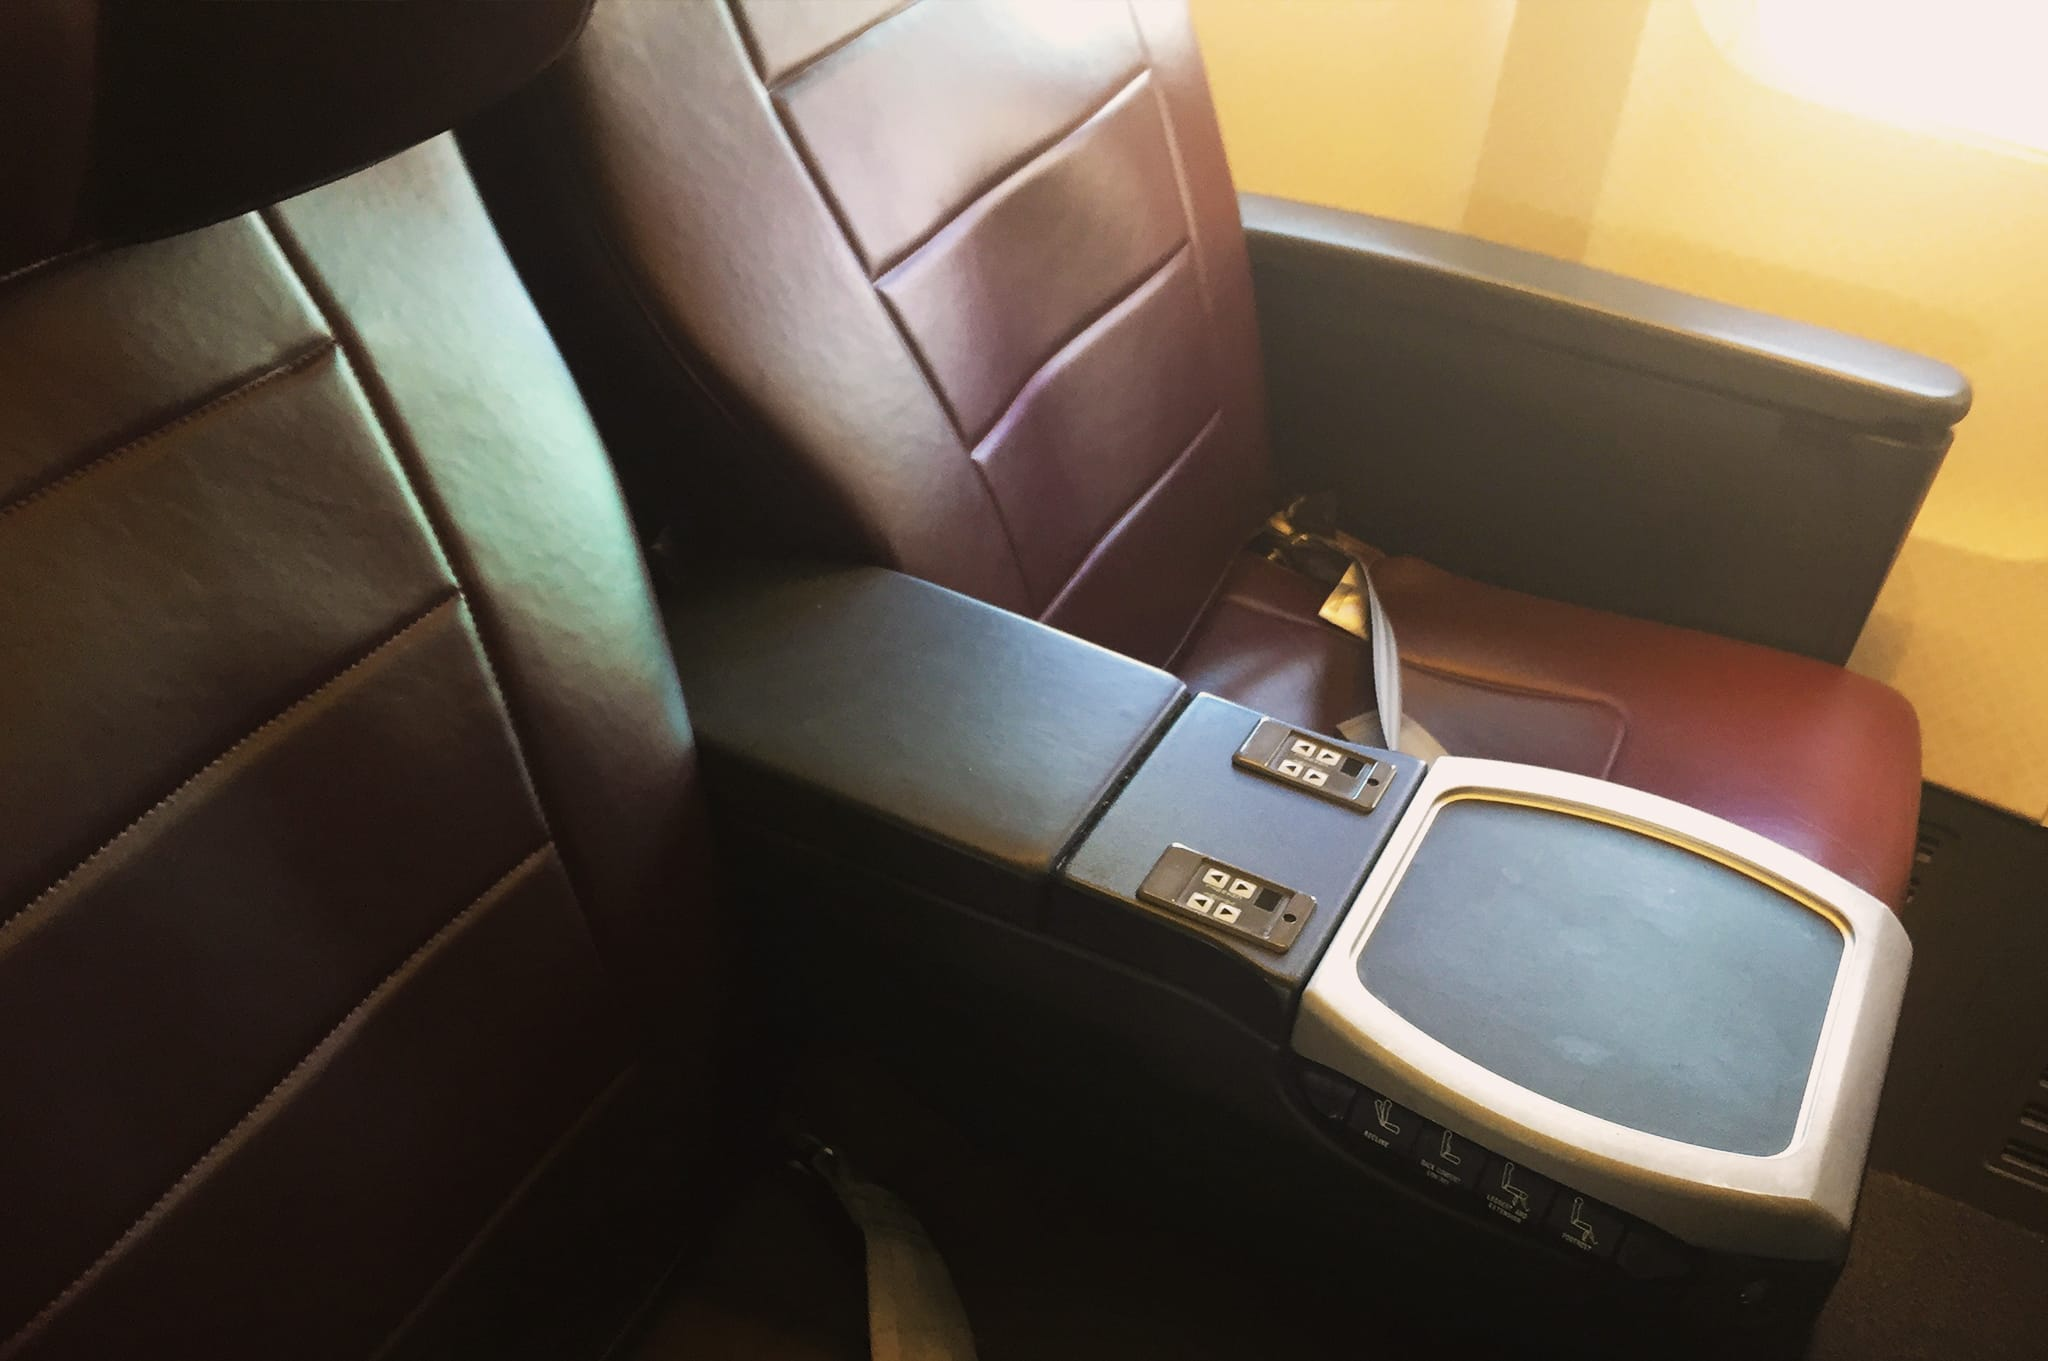 Qantas 737 Business Class Seats with audio video